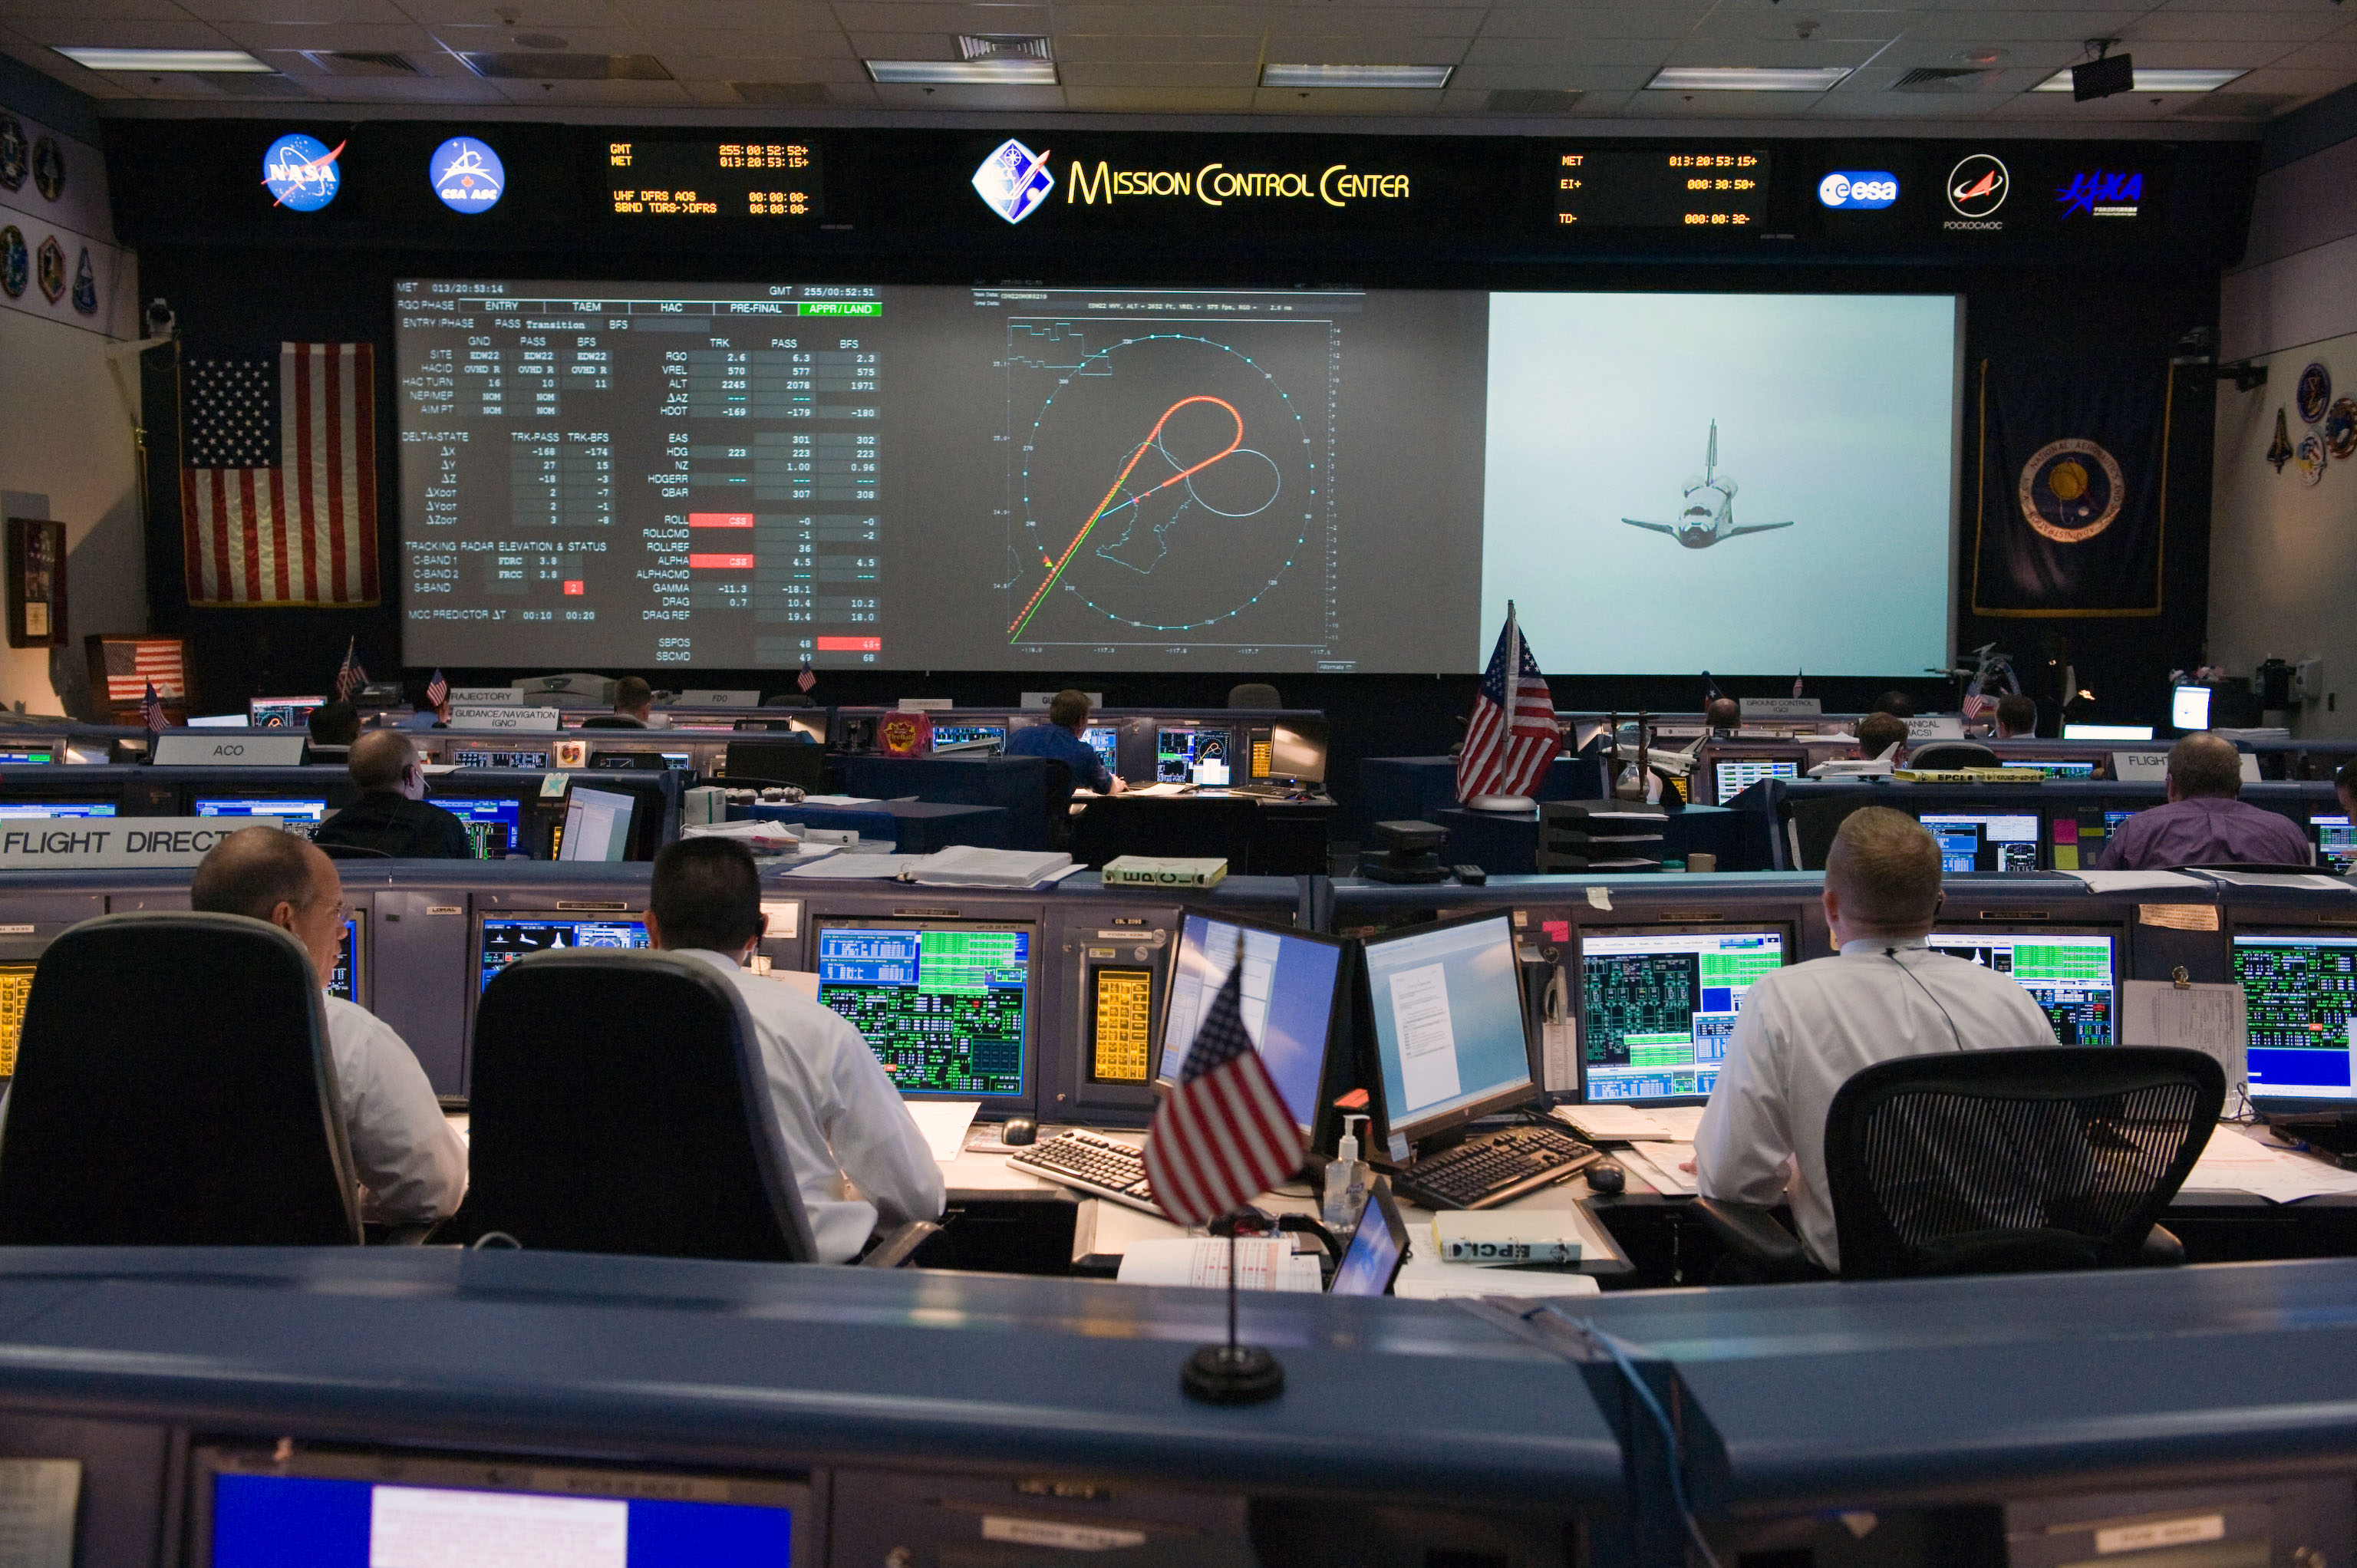 Datei:STS-128 MCC space shuttle flight control room.jpg ...